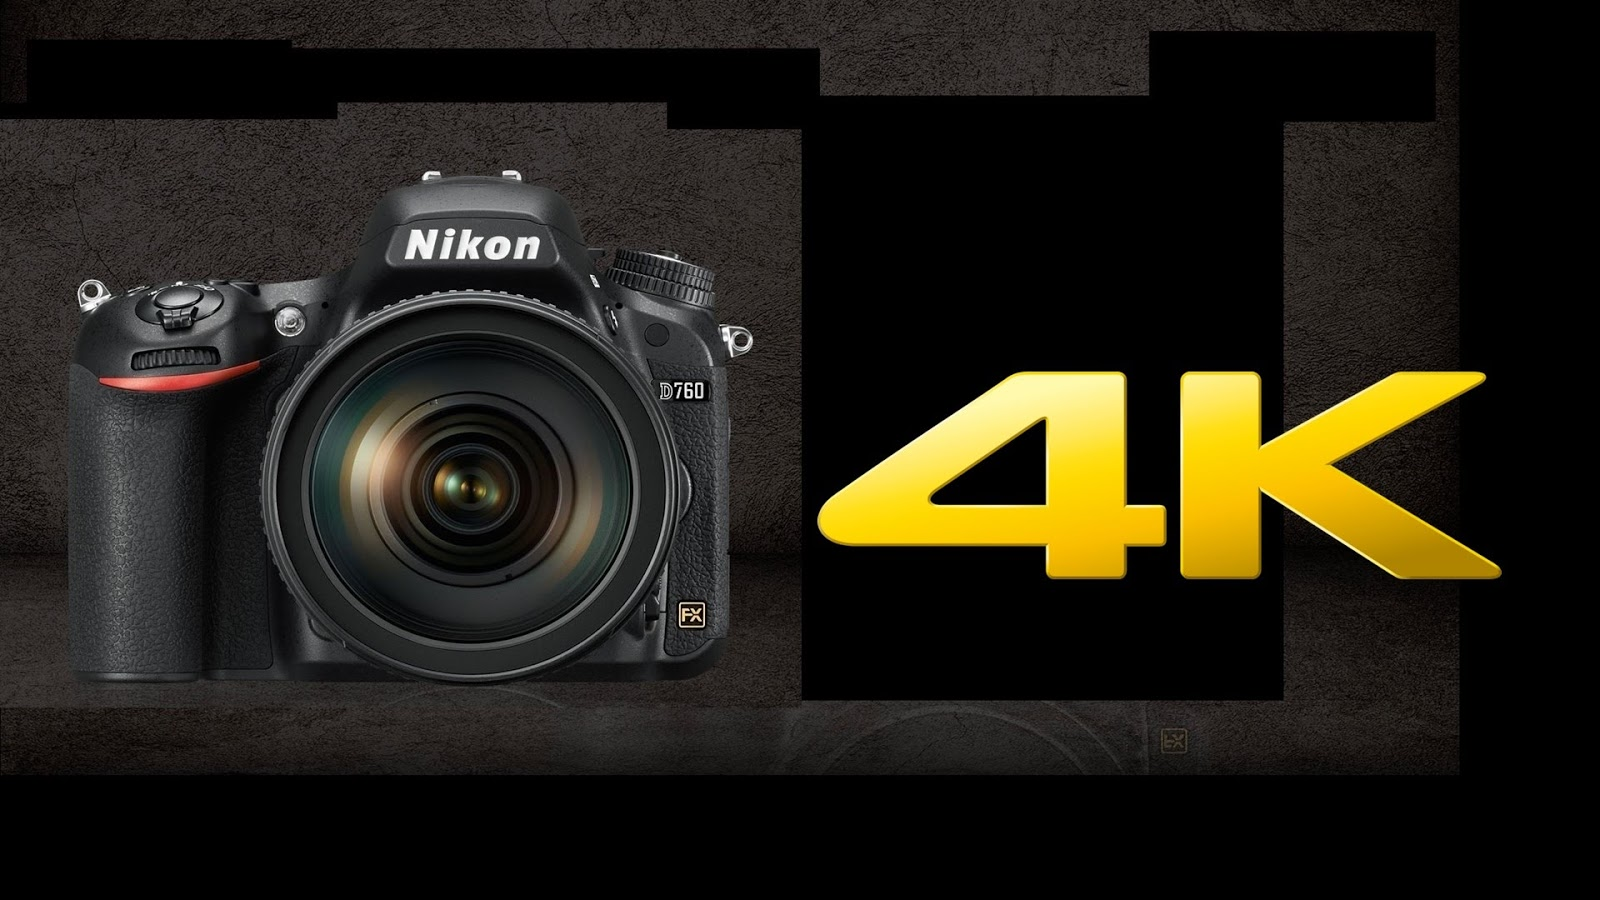 Stay tuned for official Nikon D760 news while enjoying the